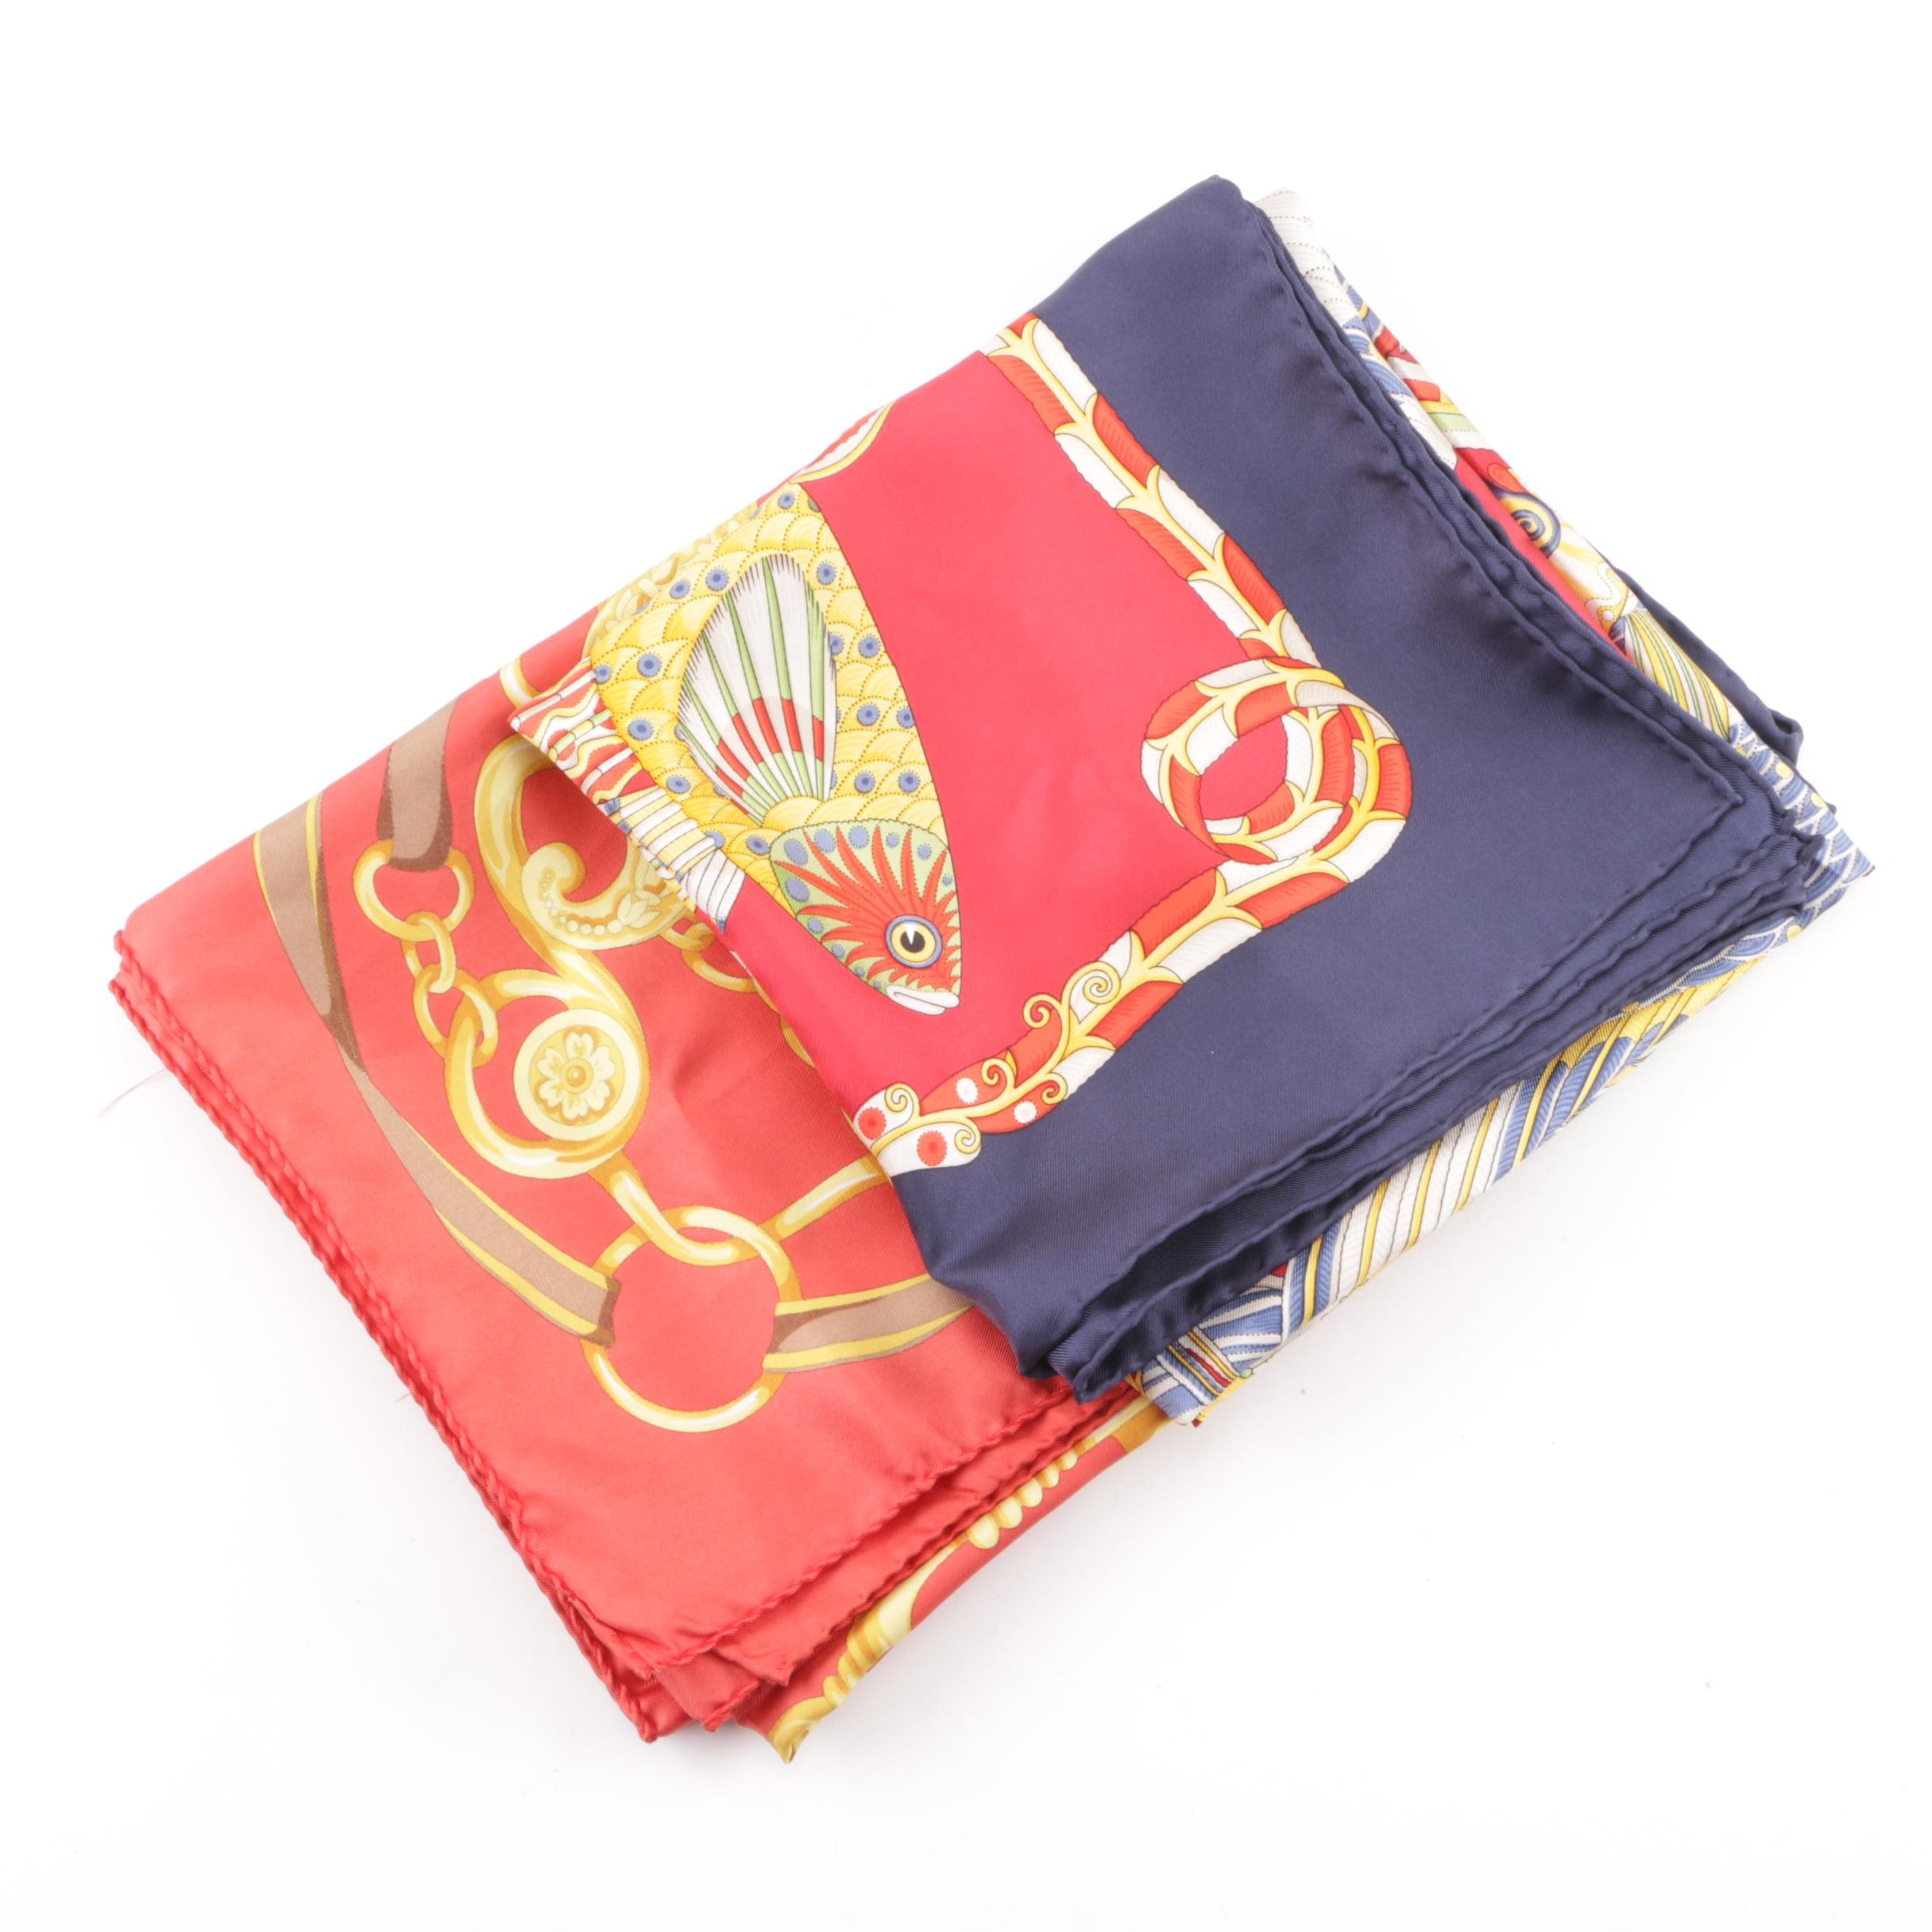 Salvatore Ferragamo and Frey Silk Scarves